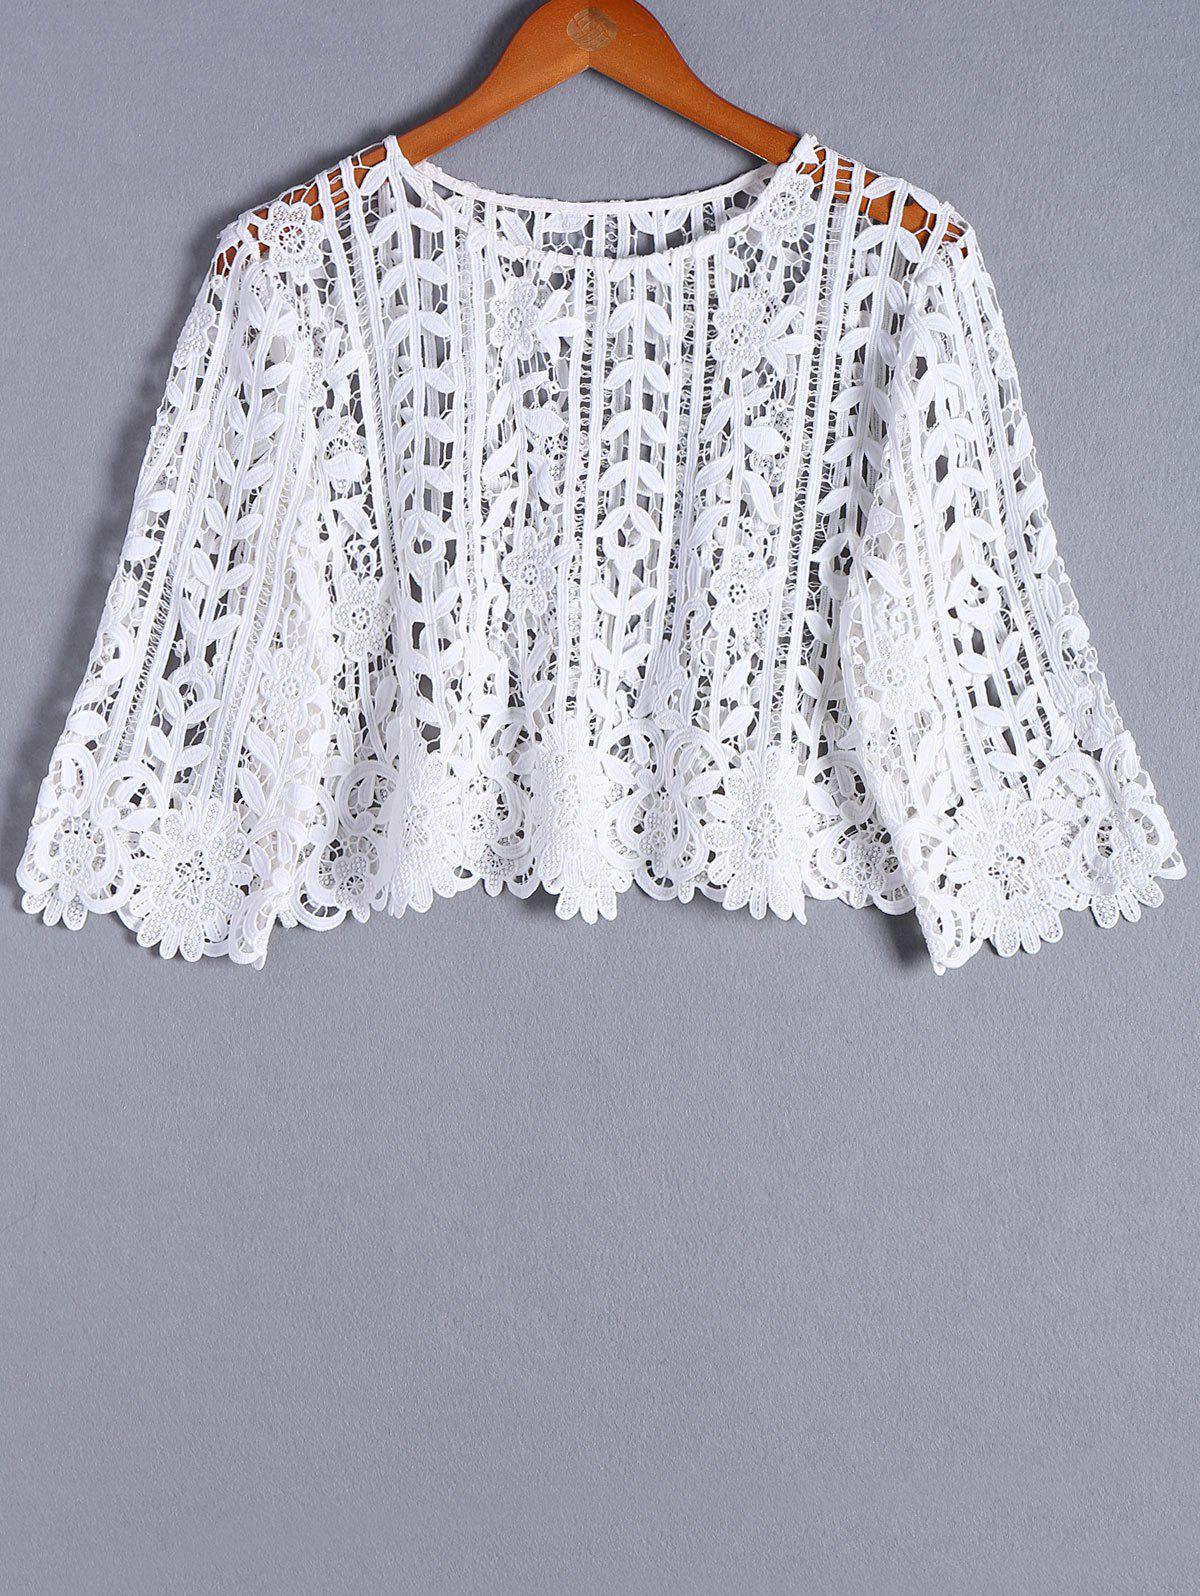 Stylish Openwork 3/4 Sleeve Round Neck Blouse For Women - WHITE ONE SIZE(FIT SIZE XS TO M)